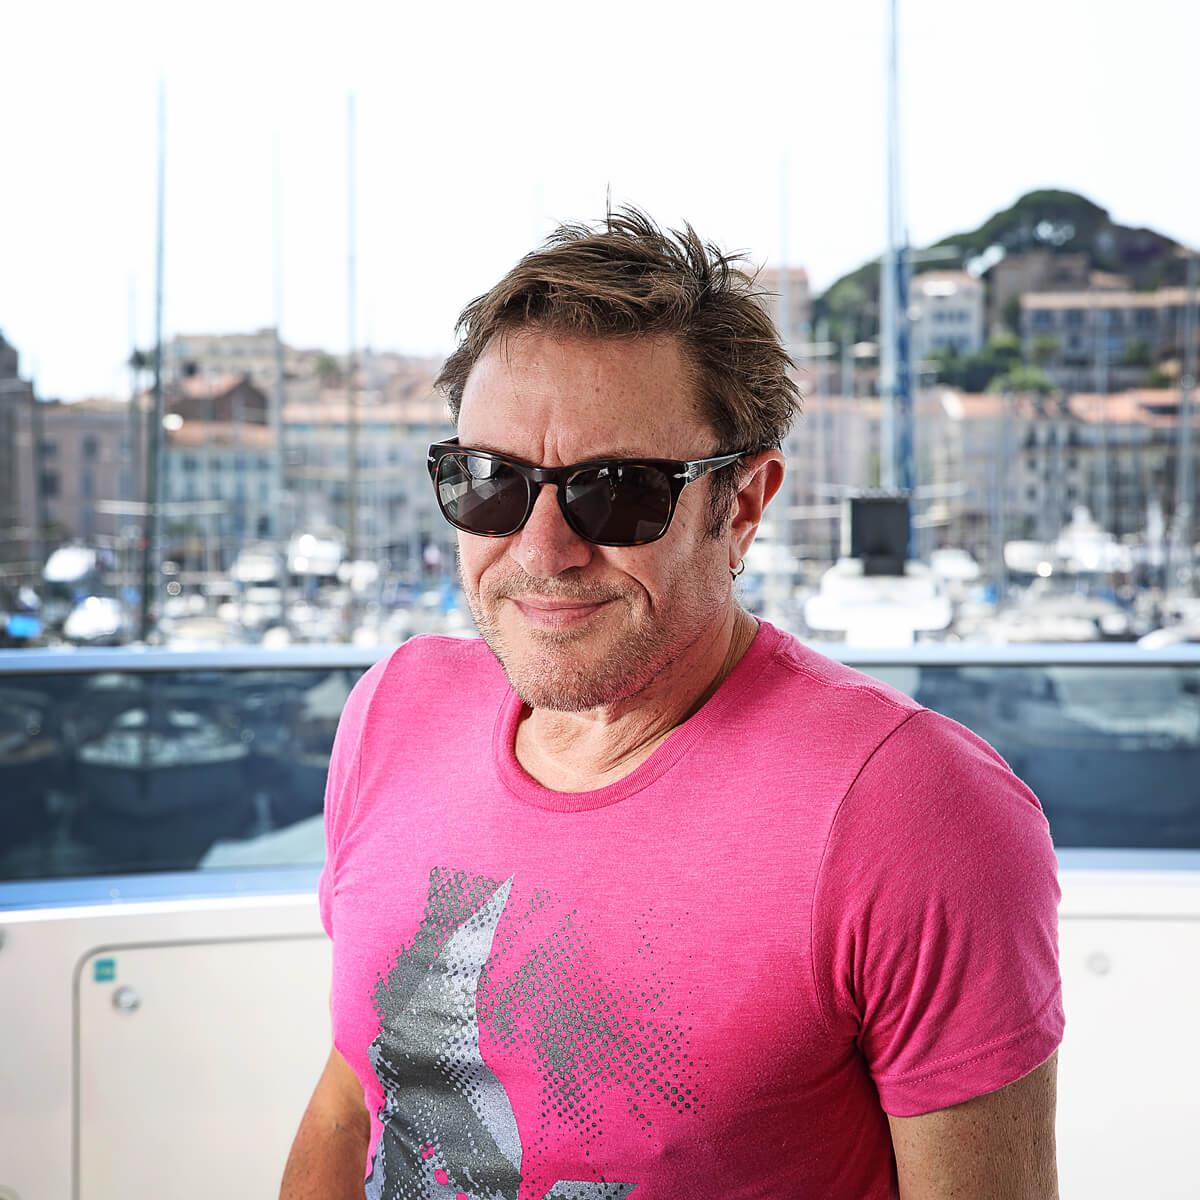 Photograph of Simon Le Bon by Julian Hanford at Cannes Lions Festival of Creativity 2017